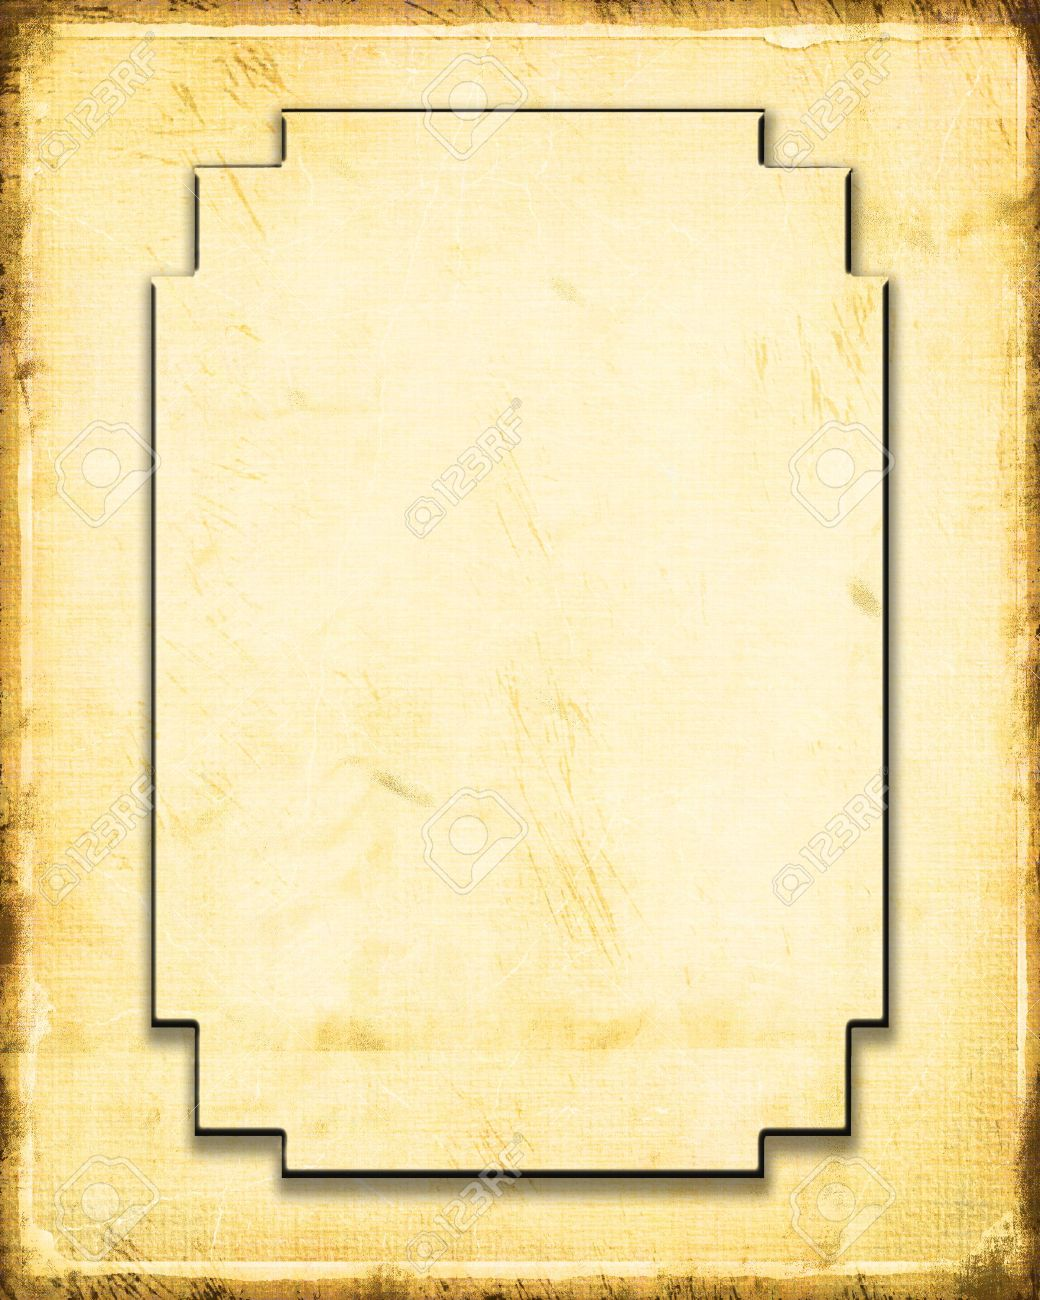 Decorative Paper Frame Stock Photo, Picture And Royalty Free Image ...